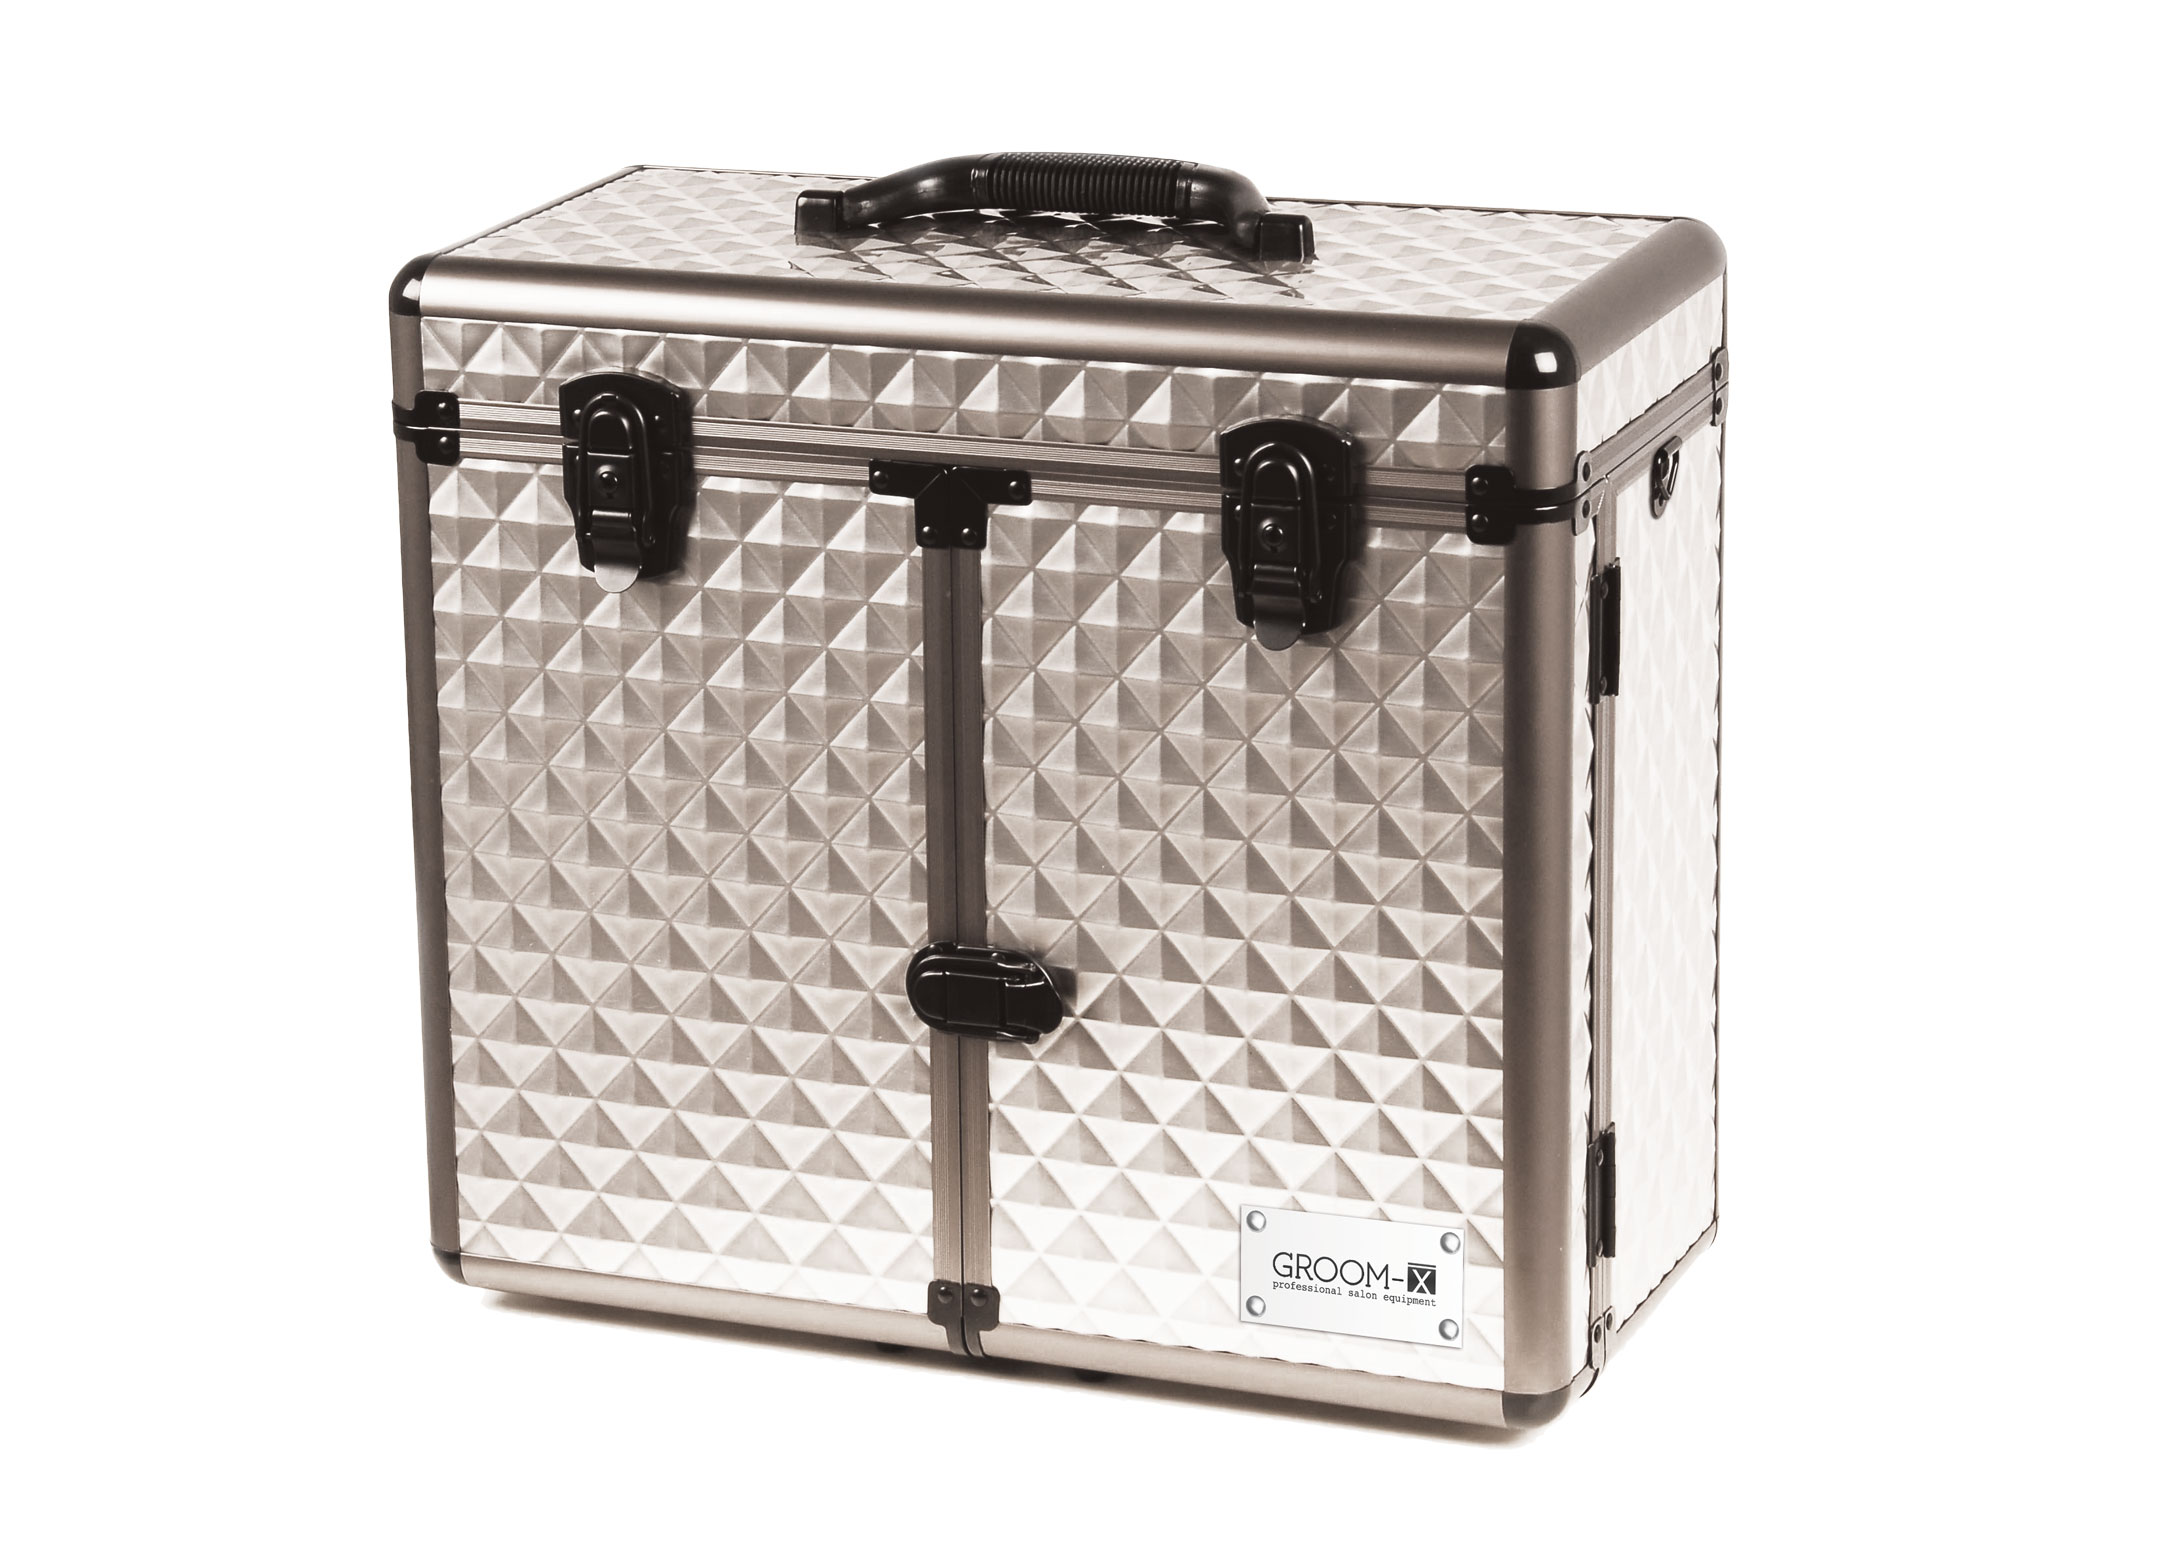 Groom-X Grooming Case Deluxe Portable with Diamond ABS Panel